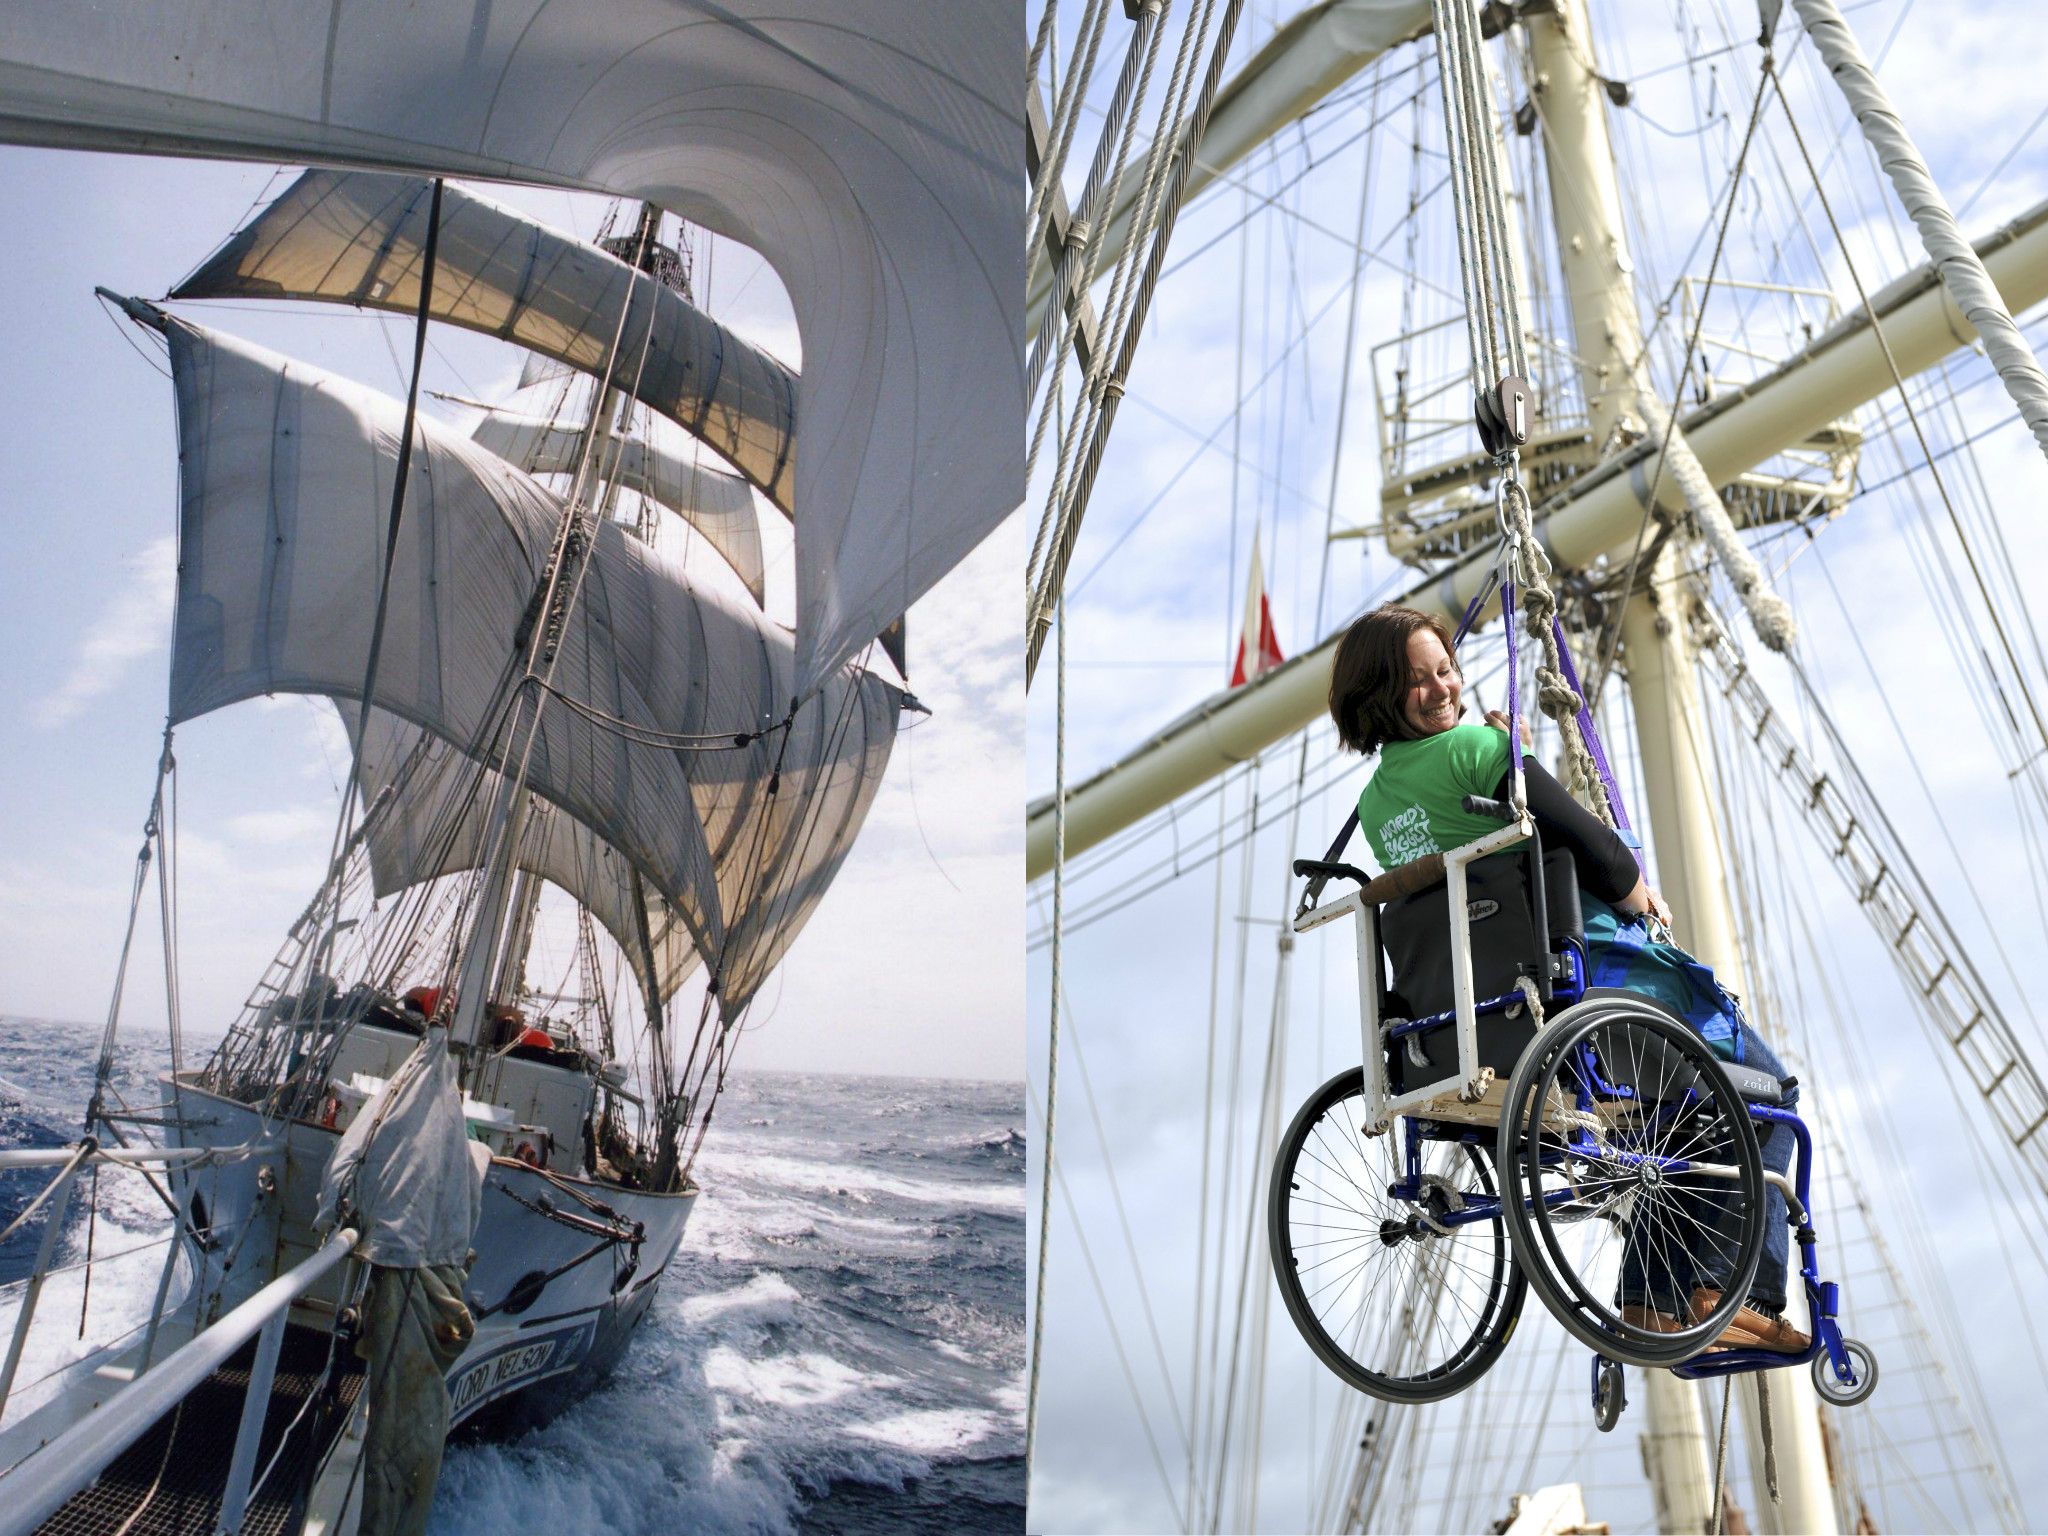 Win a Day Sail adventure with the Jubilee Sailing Trust!